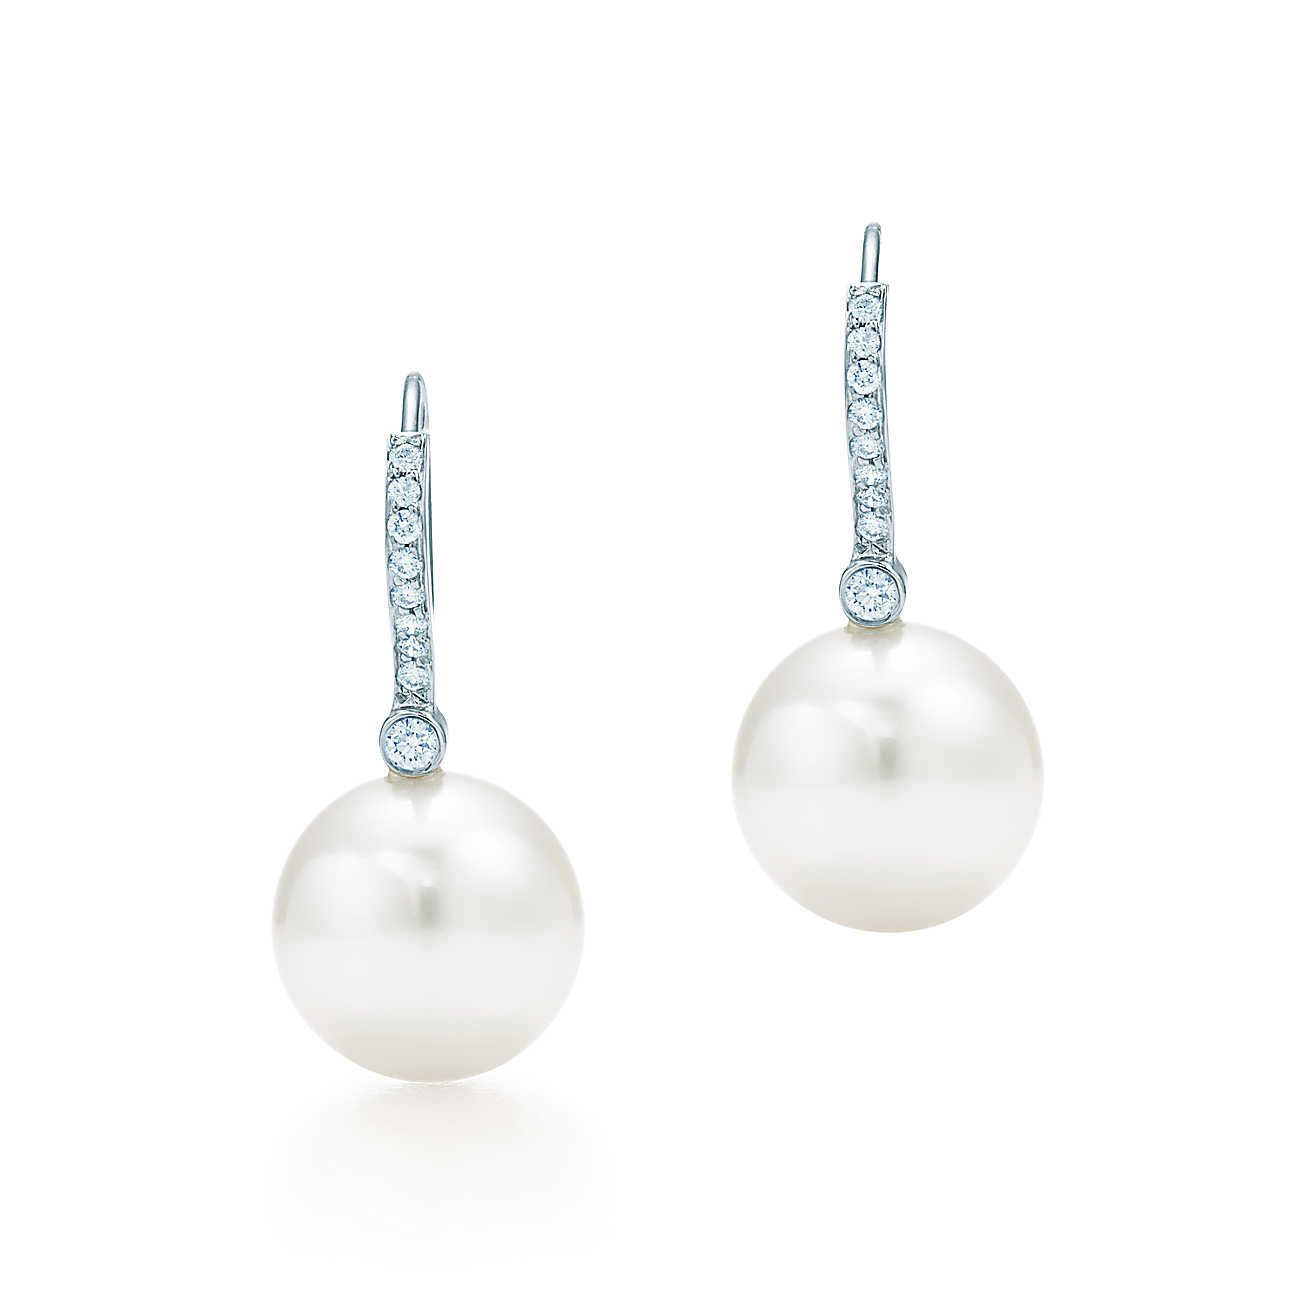 Tiffany south sea noblepearl earrings tiffany friend jewelry and